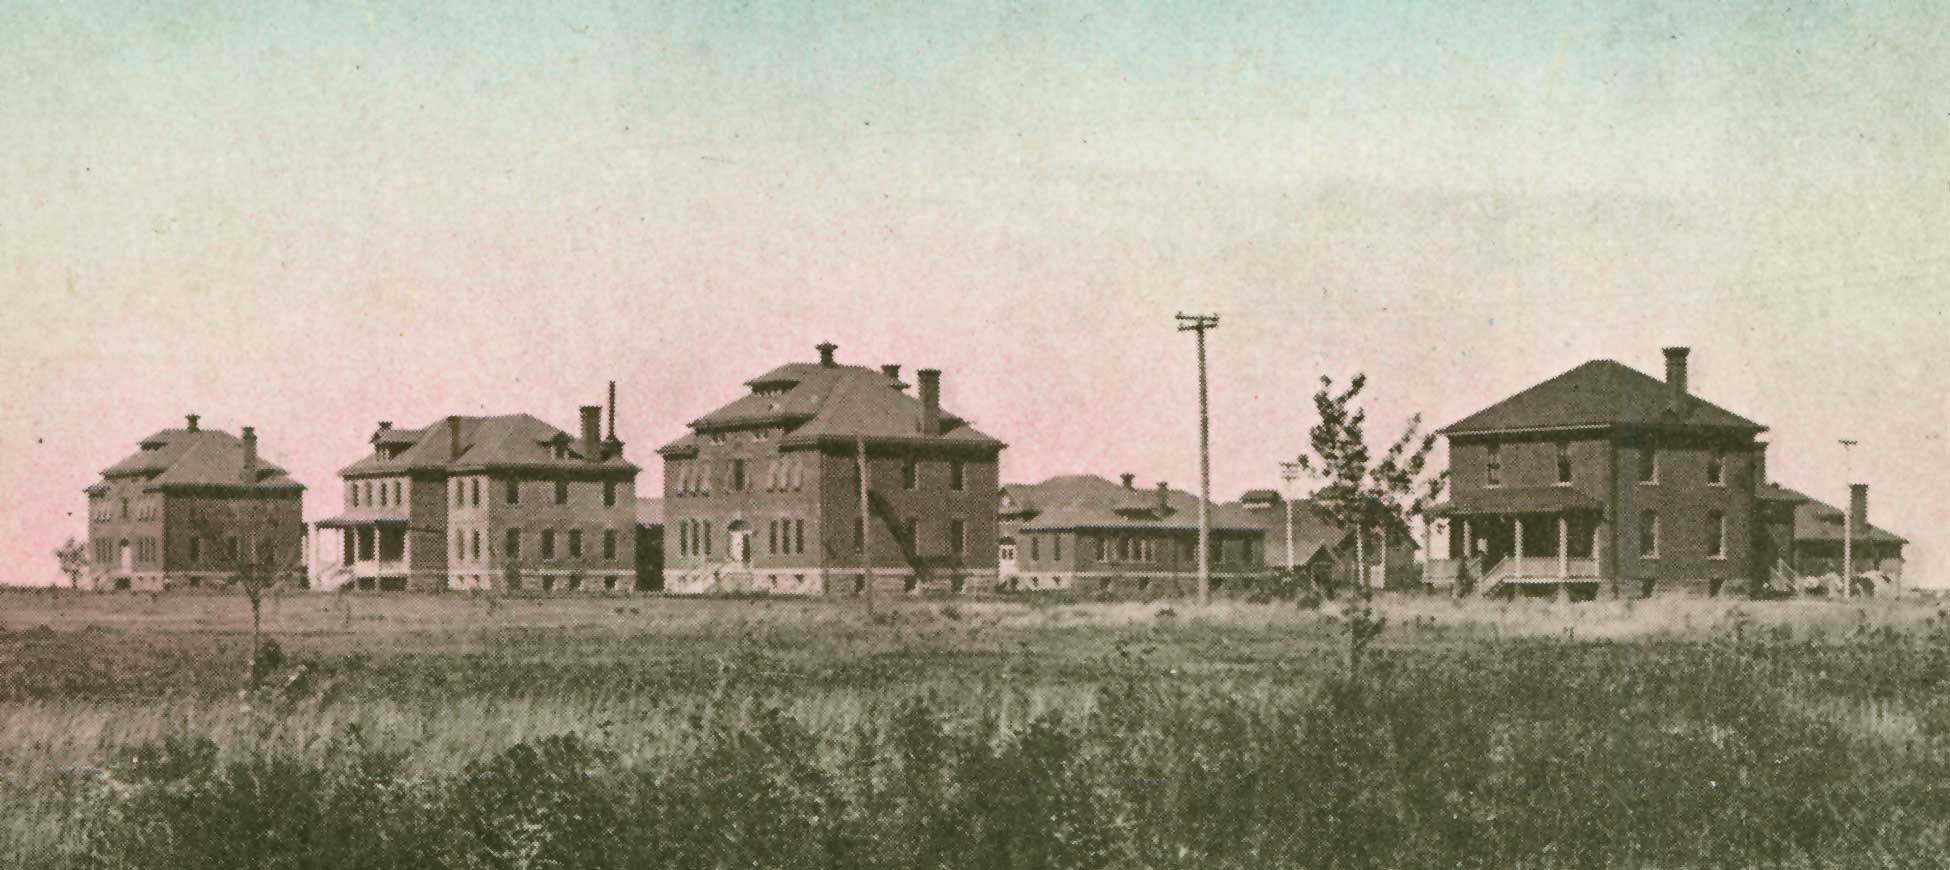 The Wahpeton Indian School